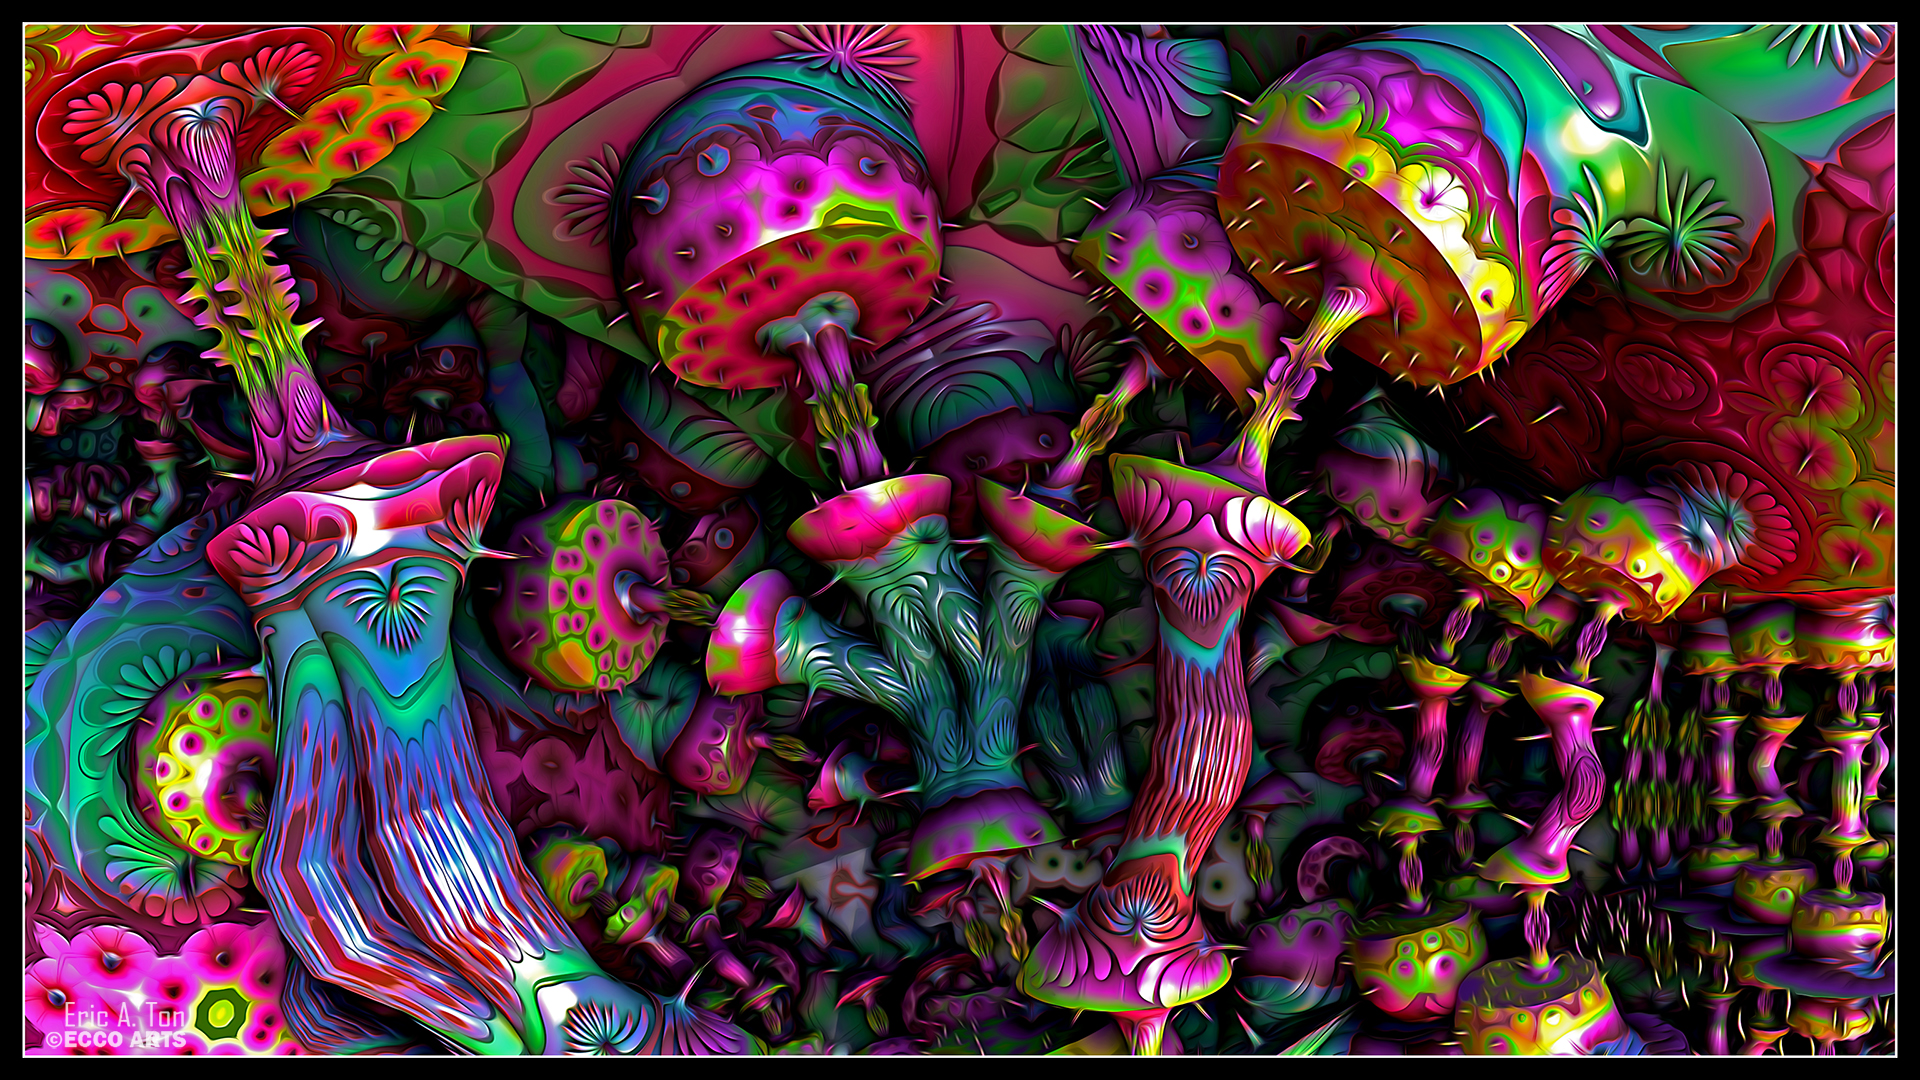 psychedelic hd 1080 wallpapers sexy - photo #22